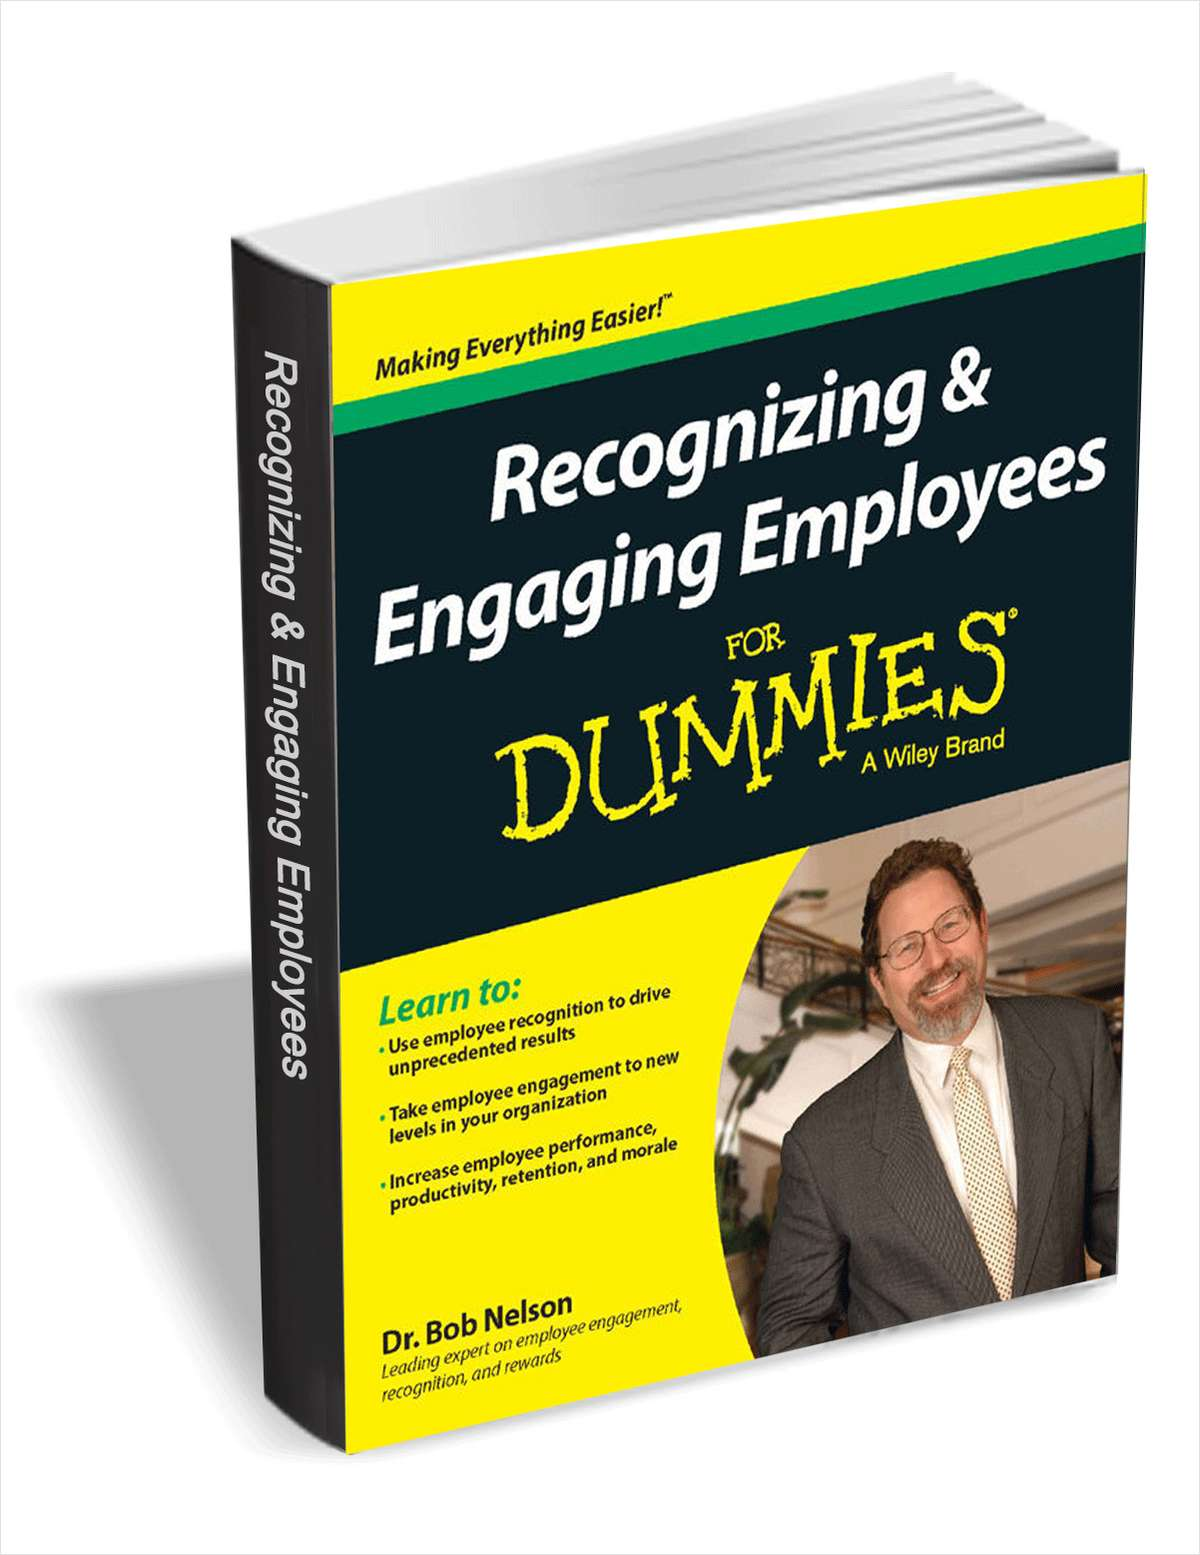 Recognizing and Engaging Employees For Dummies ($13 Value) FREE For a Limited Time